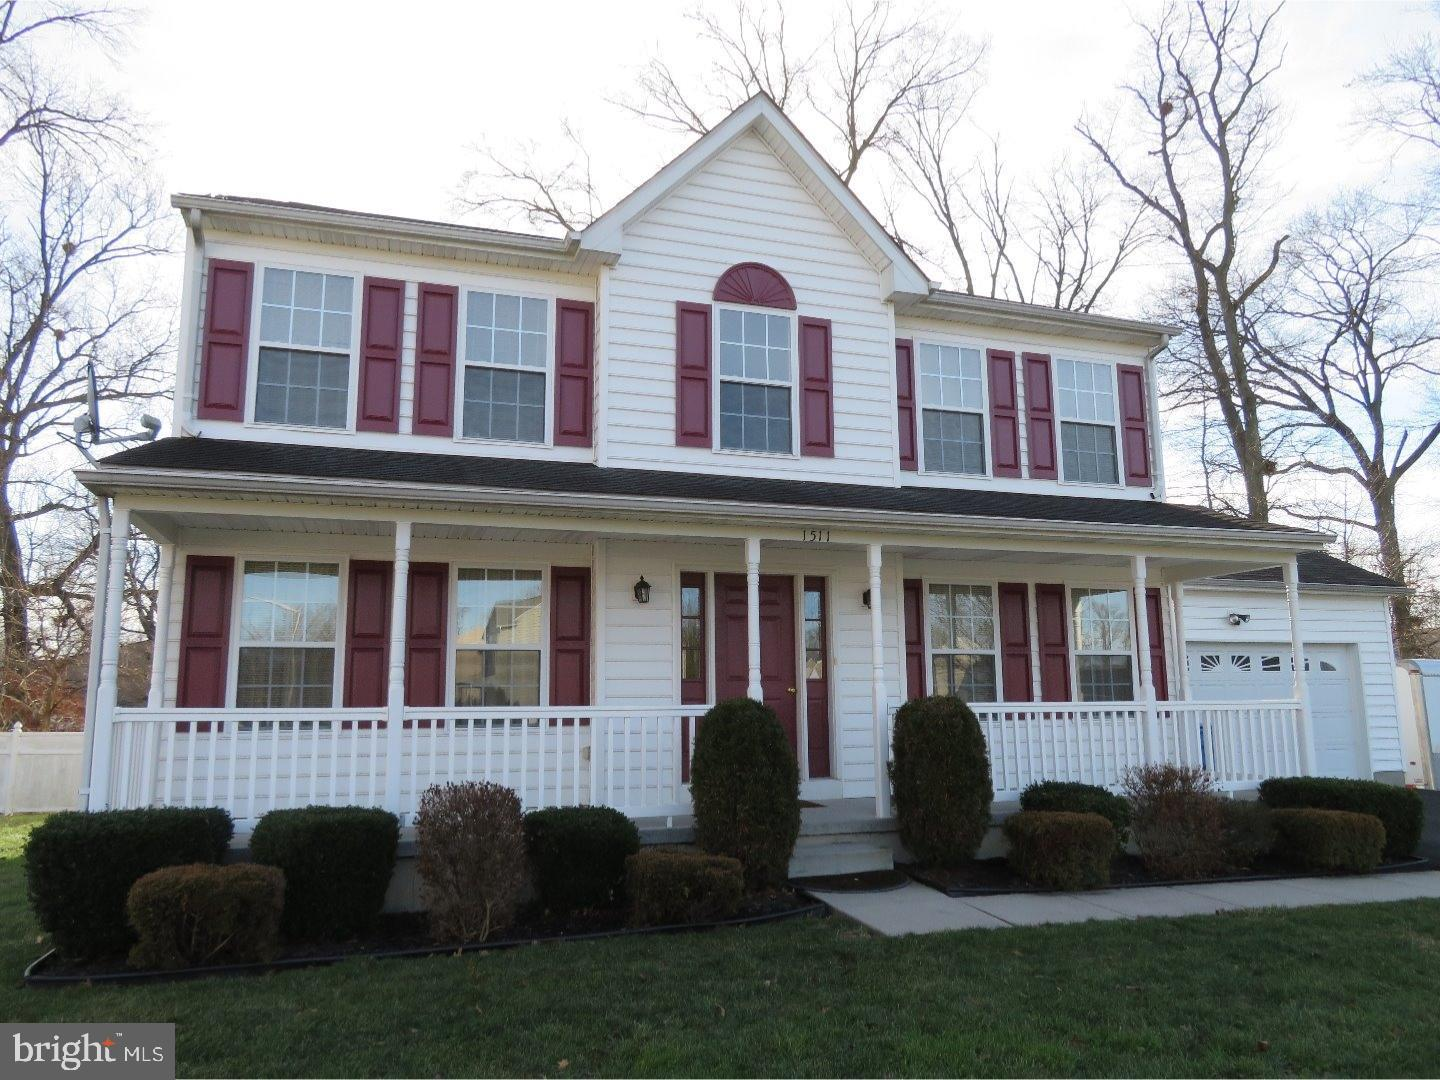 1511 MADISON COURT, BRISTOL, PA 19007